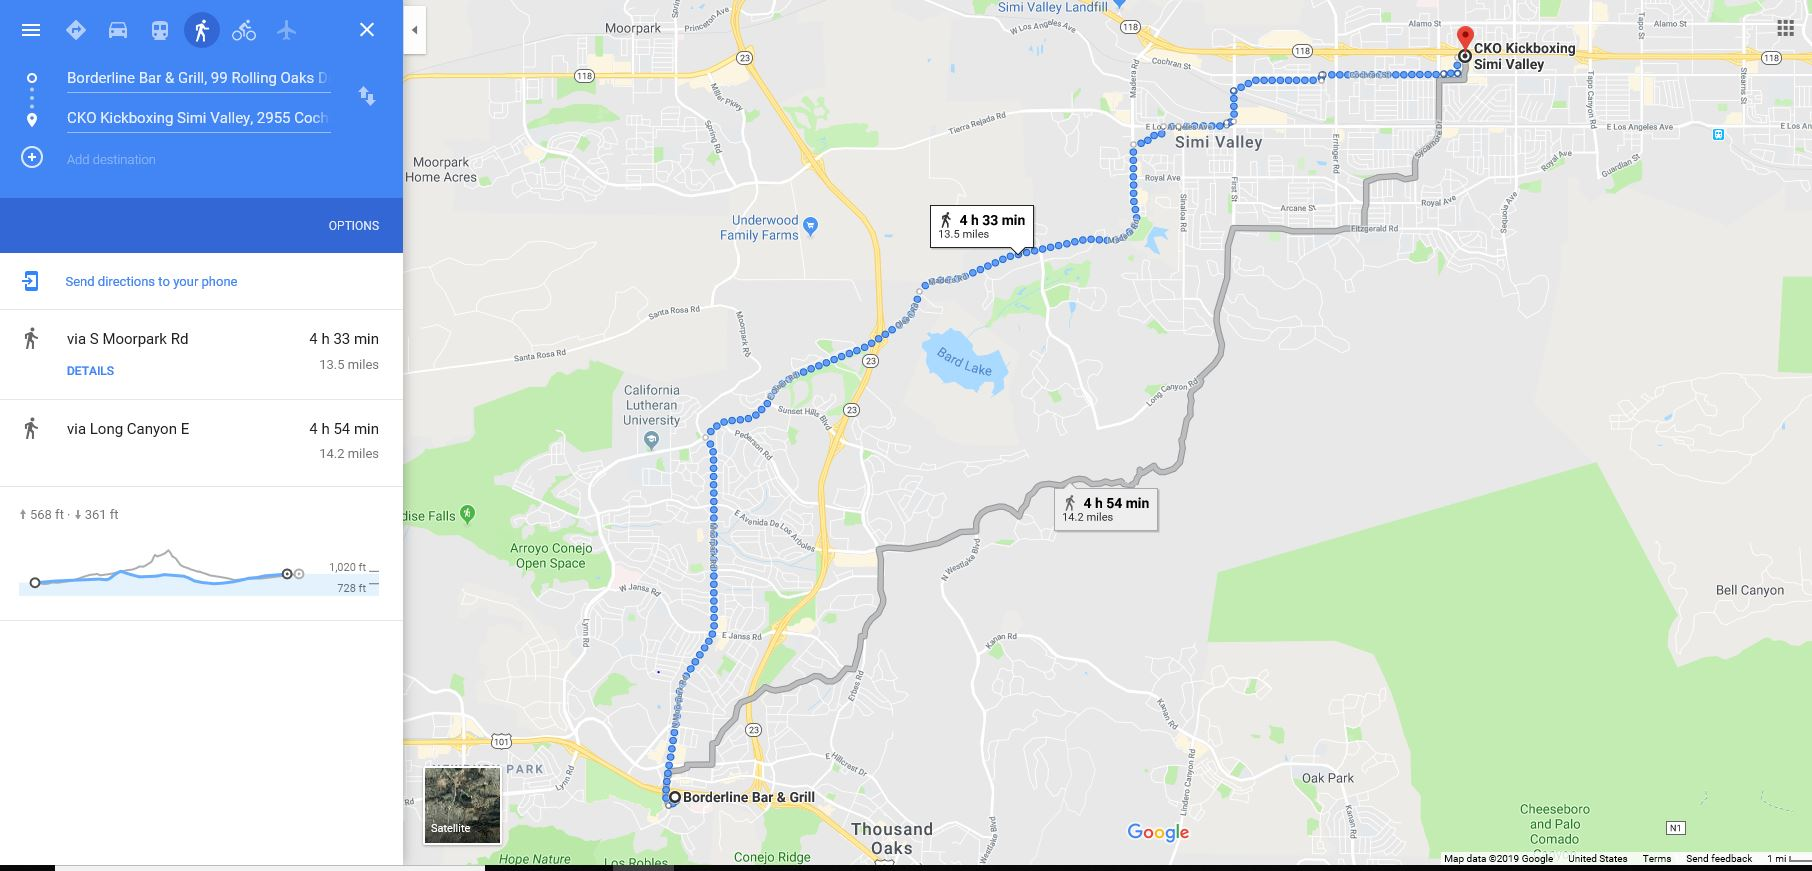 13.5 Mile Run - checkpoints830am Thousand Oaks-Borderline Bar & Grill (commemoration & Soldier Salute)-run1030am CKO Simi Valley (Interview)